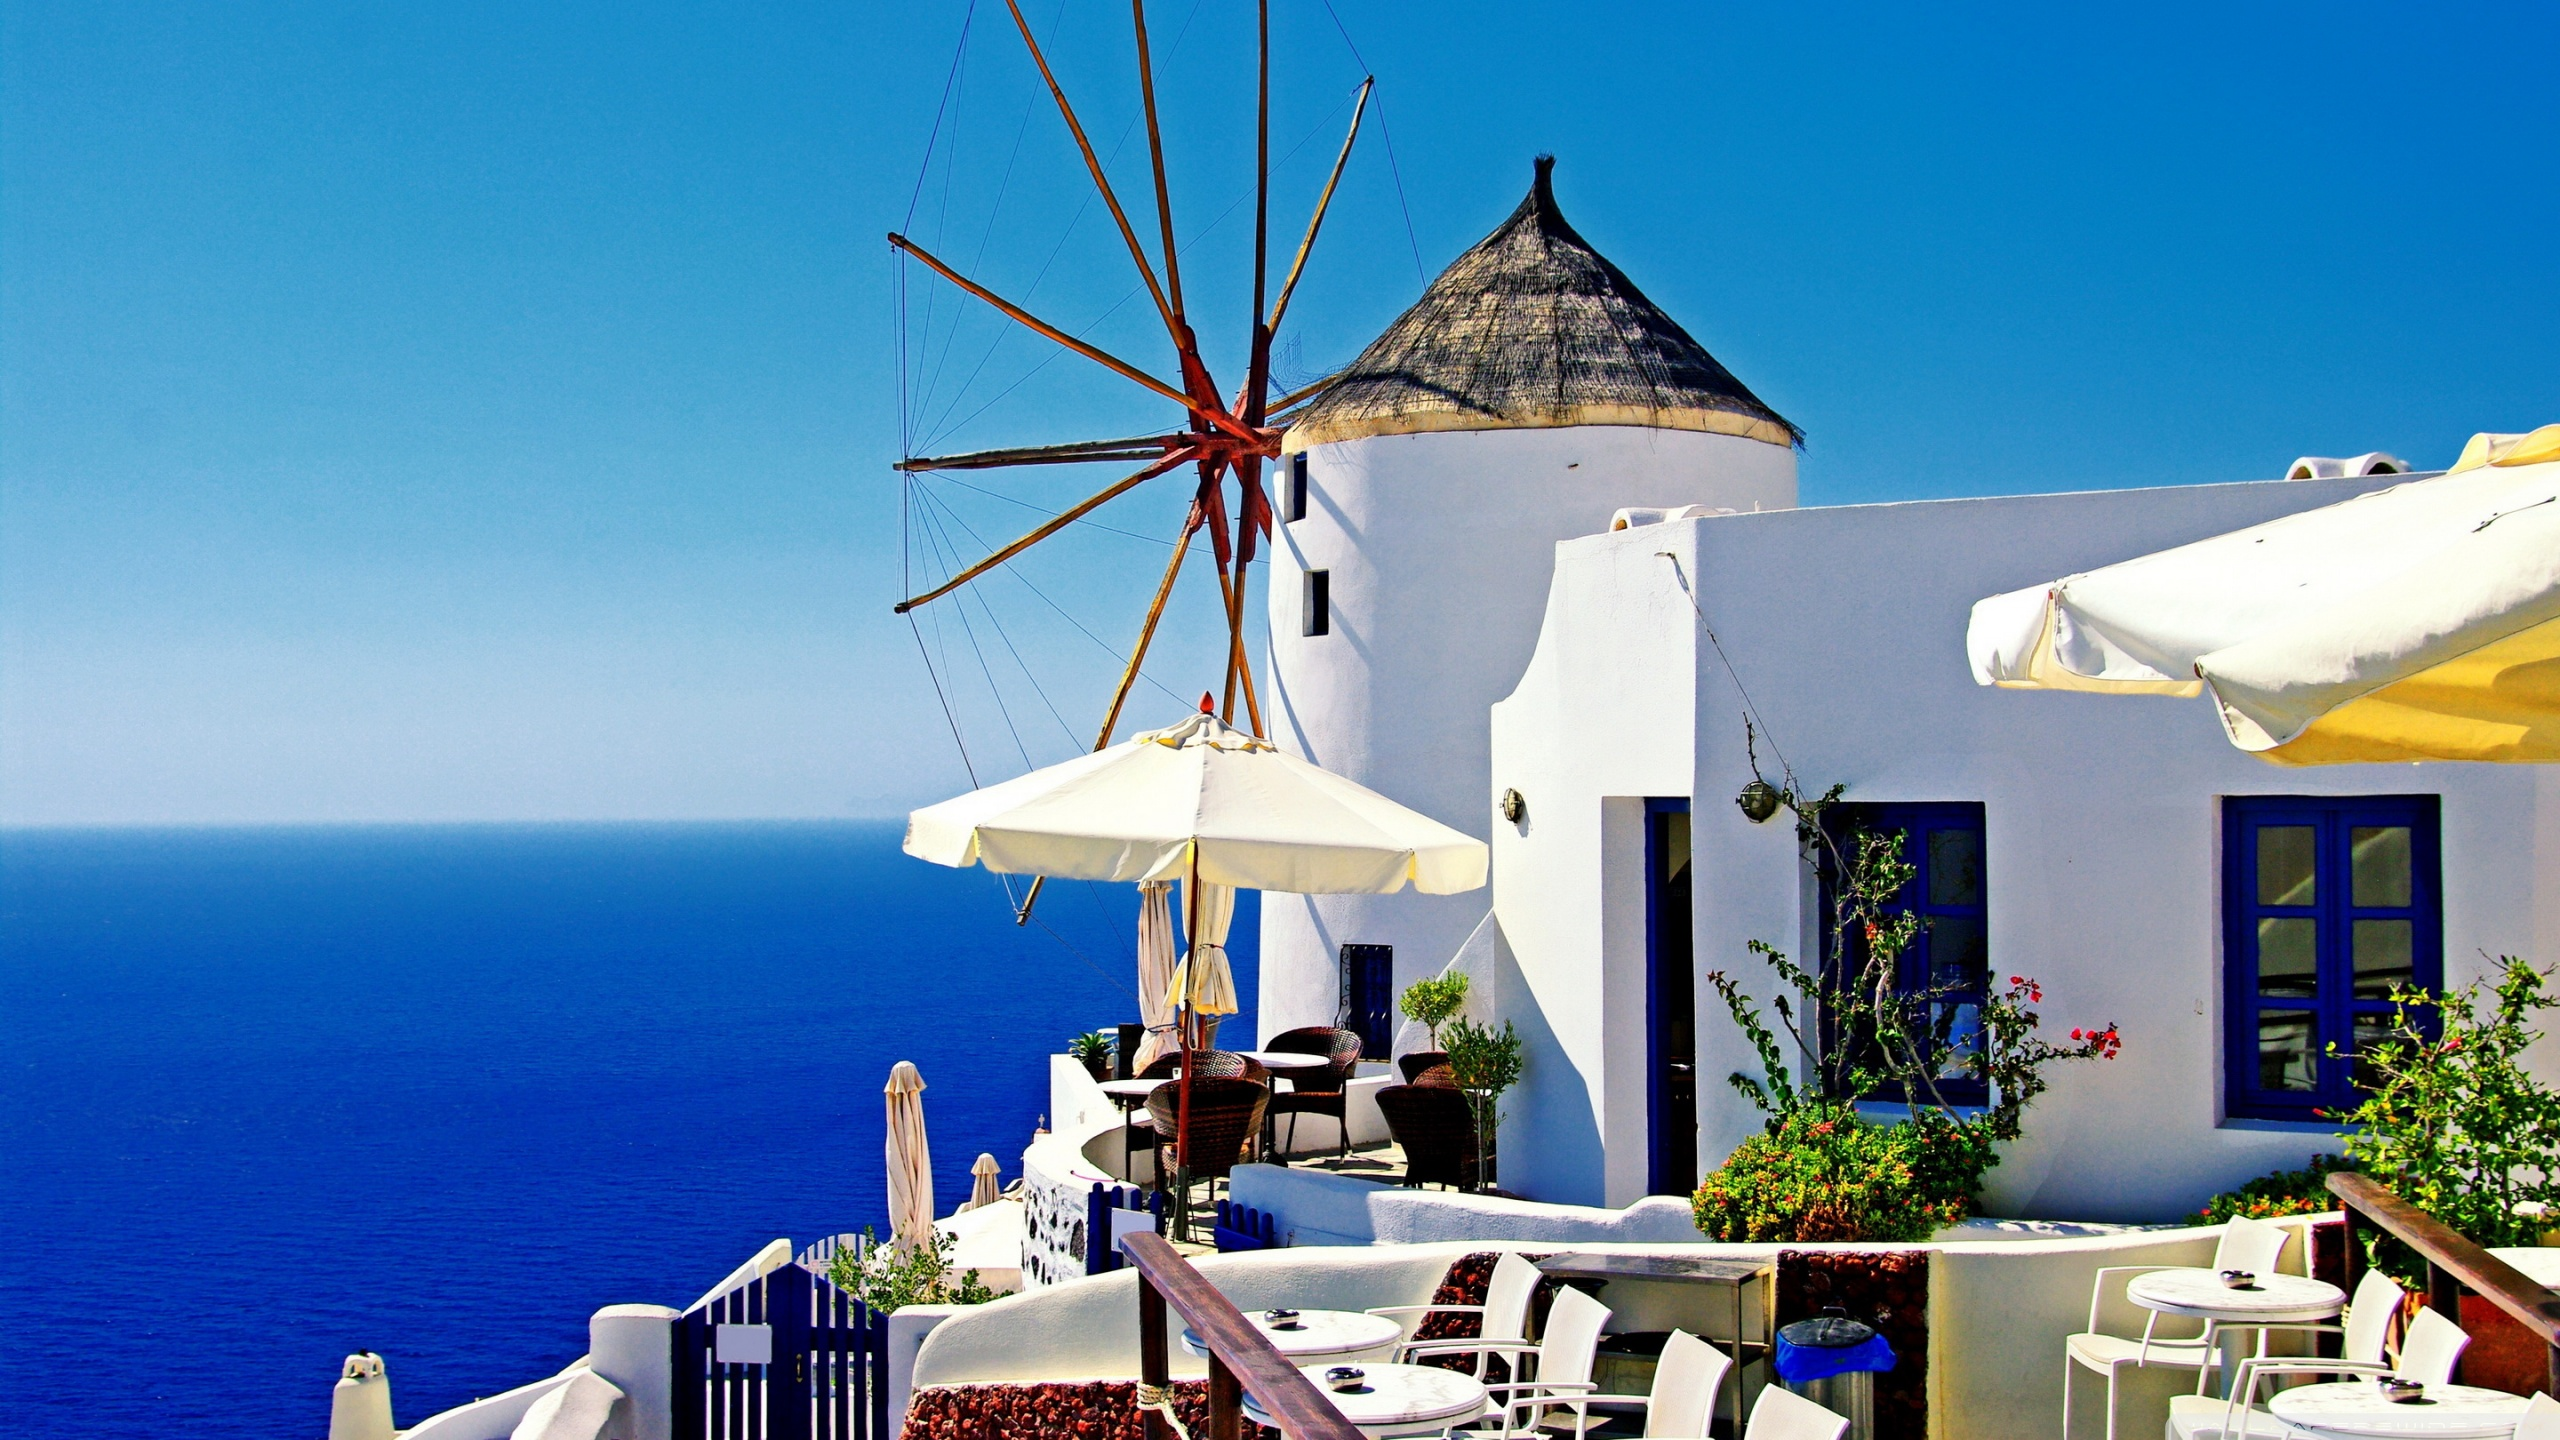 Santorini Windmill Cafe 4K HD Desktop Wallpaper for 4K Ultra HD 2560x1440